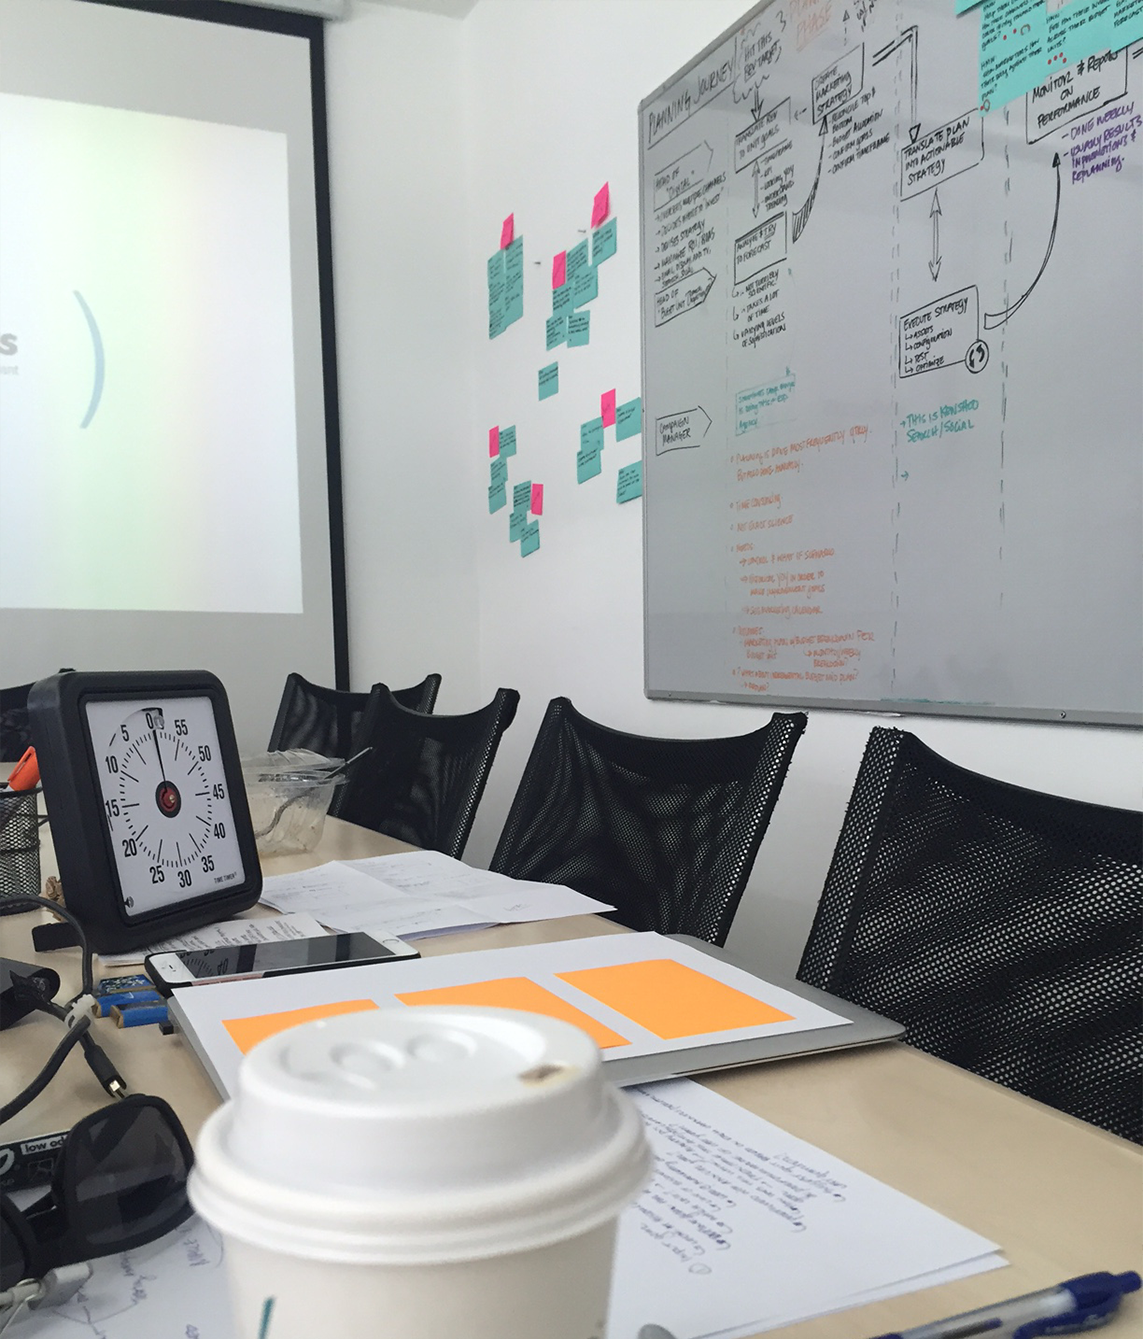 LED TEAMMATES THROUGH THE GV DESIGN SPRINT TO JUMP START THE PROJECT. 5 DAYS, LOTS OF COFFEE, POST IT NOTES GALORE.